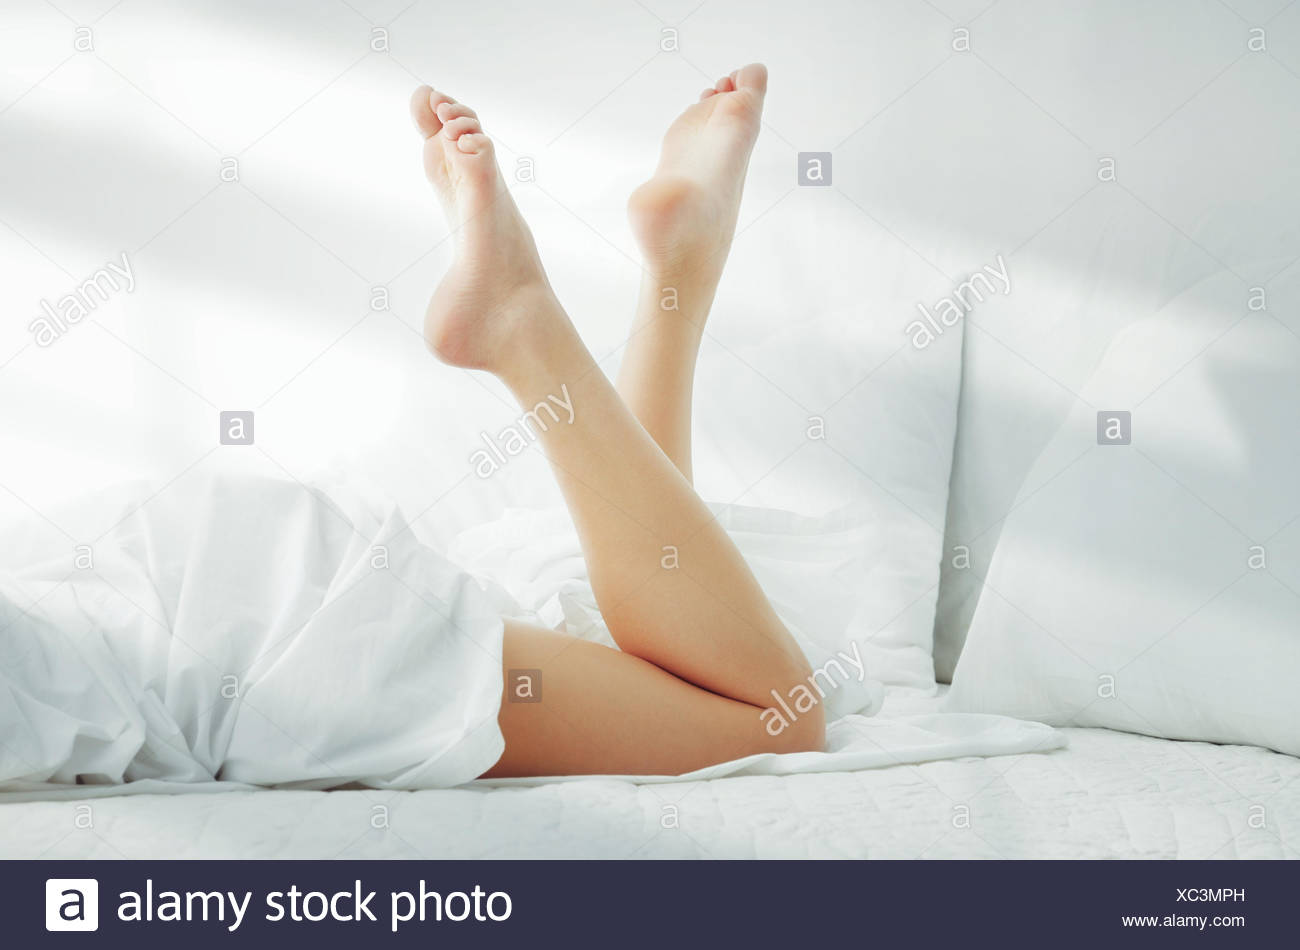 Woman on the bed - Stock Image